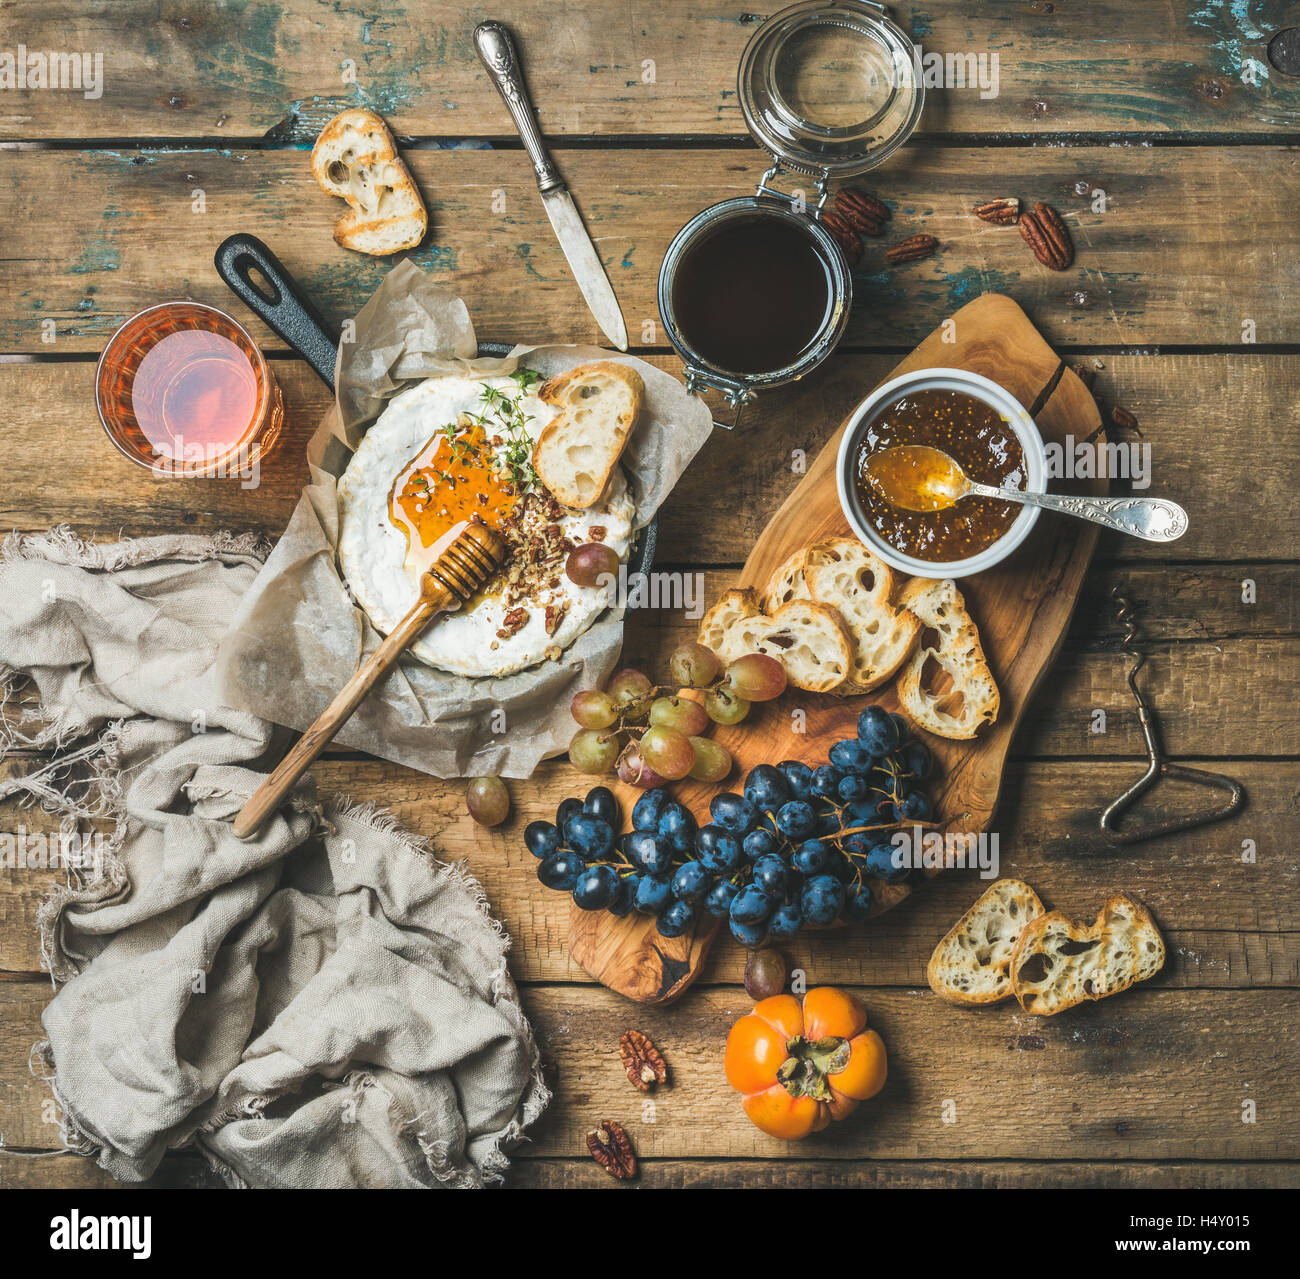 Cheese, fruit and wine set over rustic wooden background - Stock Image